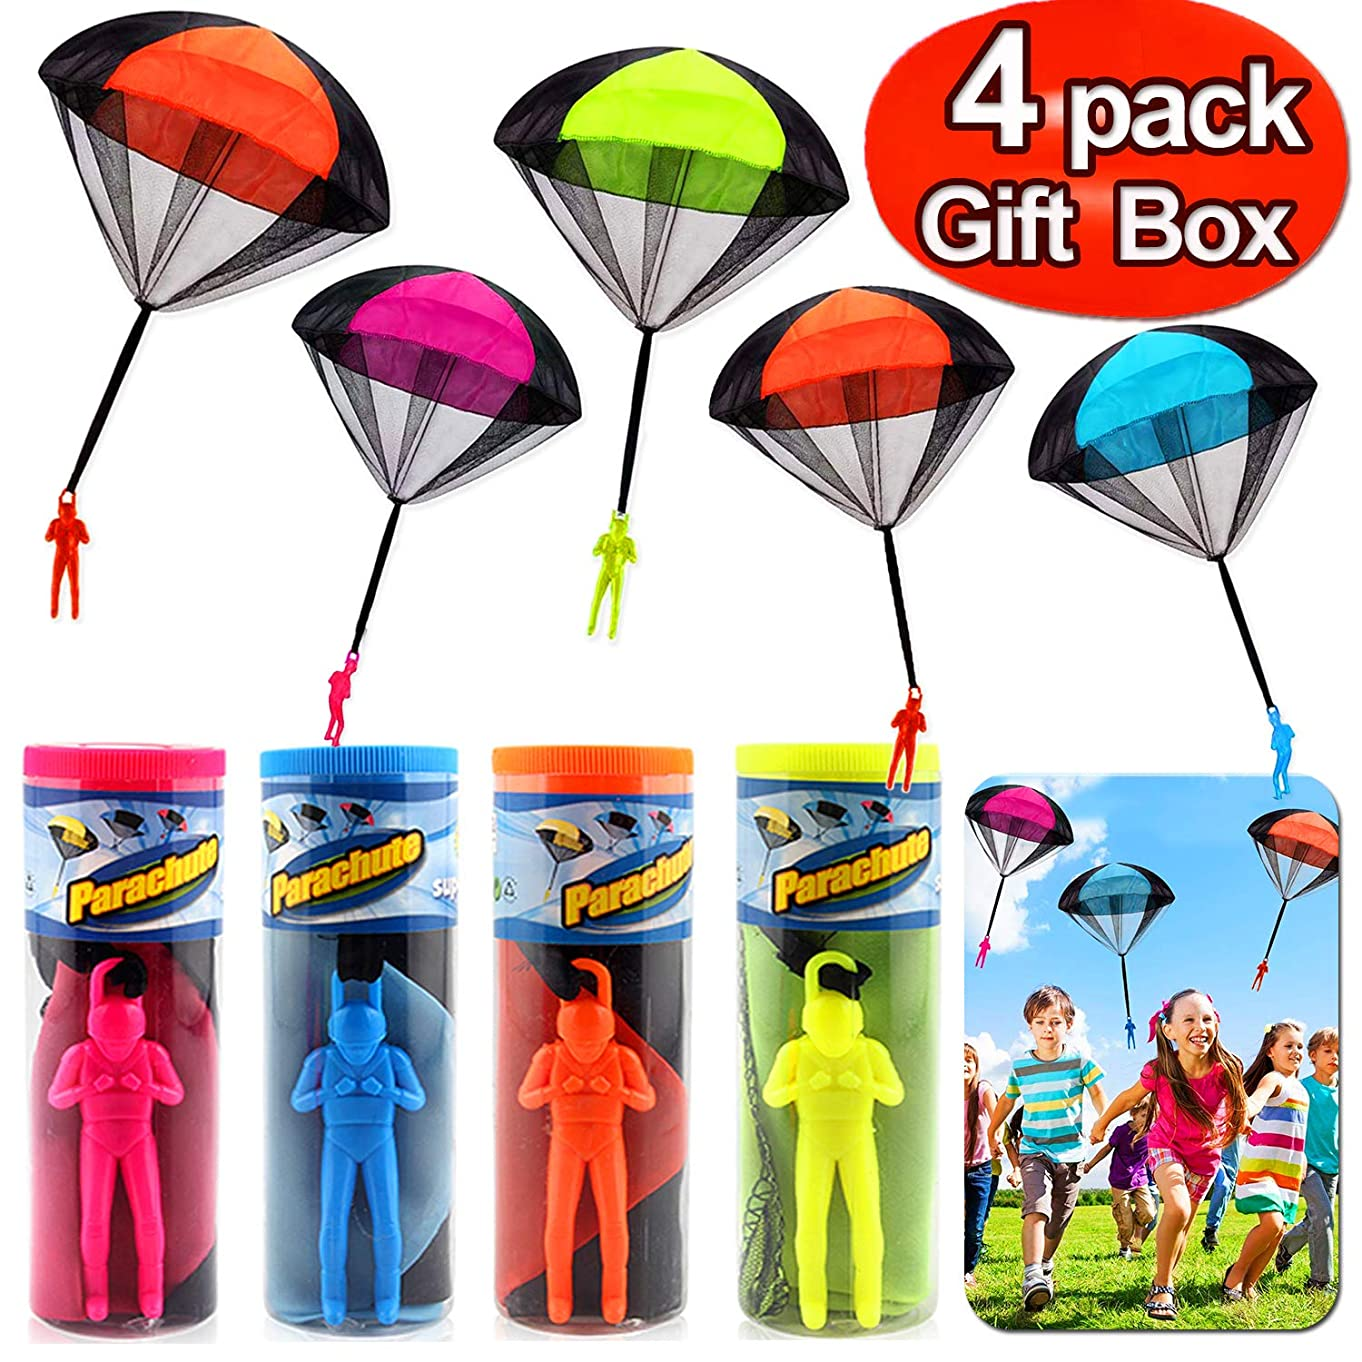 Parachute Toys - 4 Pack Tangle Free Hand Throwing Toy Outdoor Children Flying Parachute Toys No Batteries Flying Toys Skydiver Parachute Men with Launcher for Kids Family Game Holiday Toy Gift Set